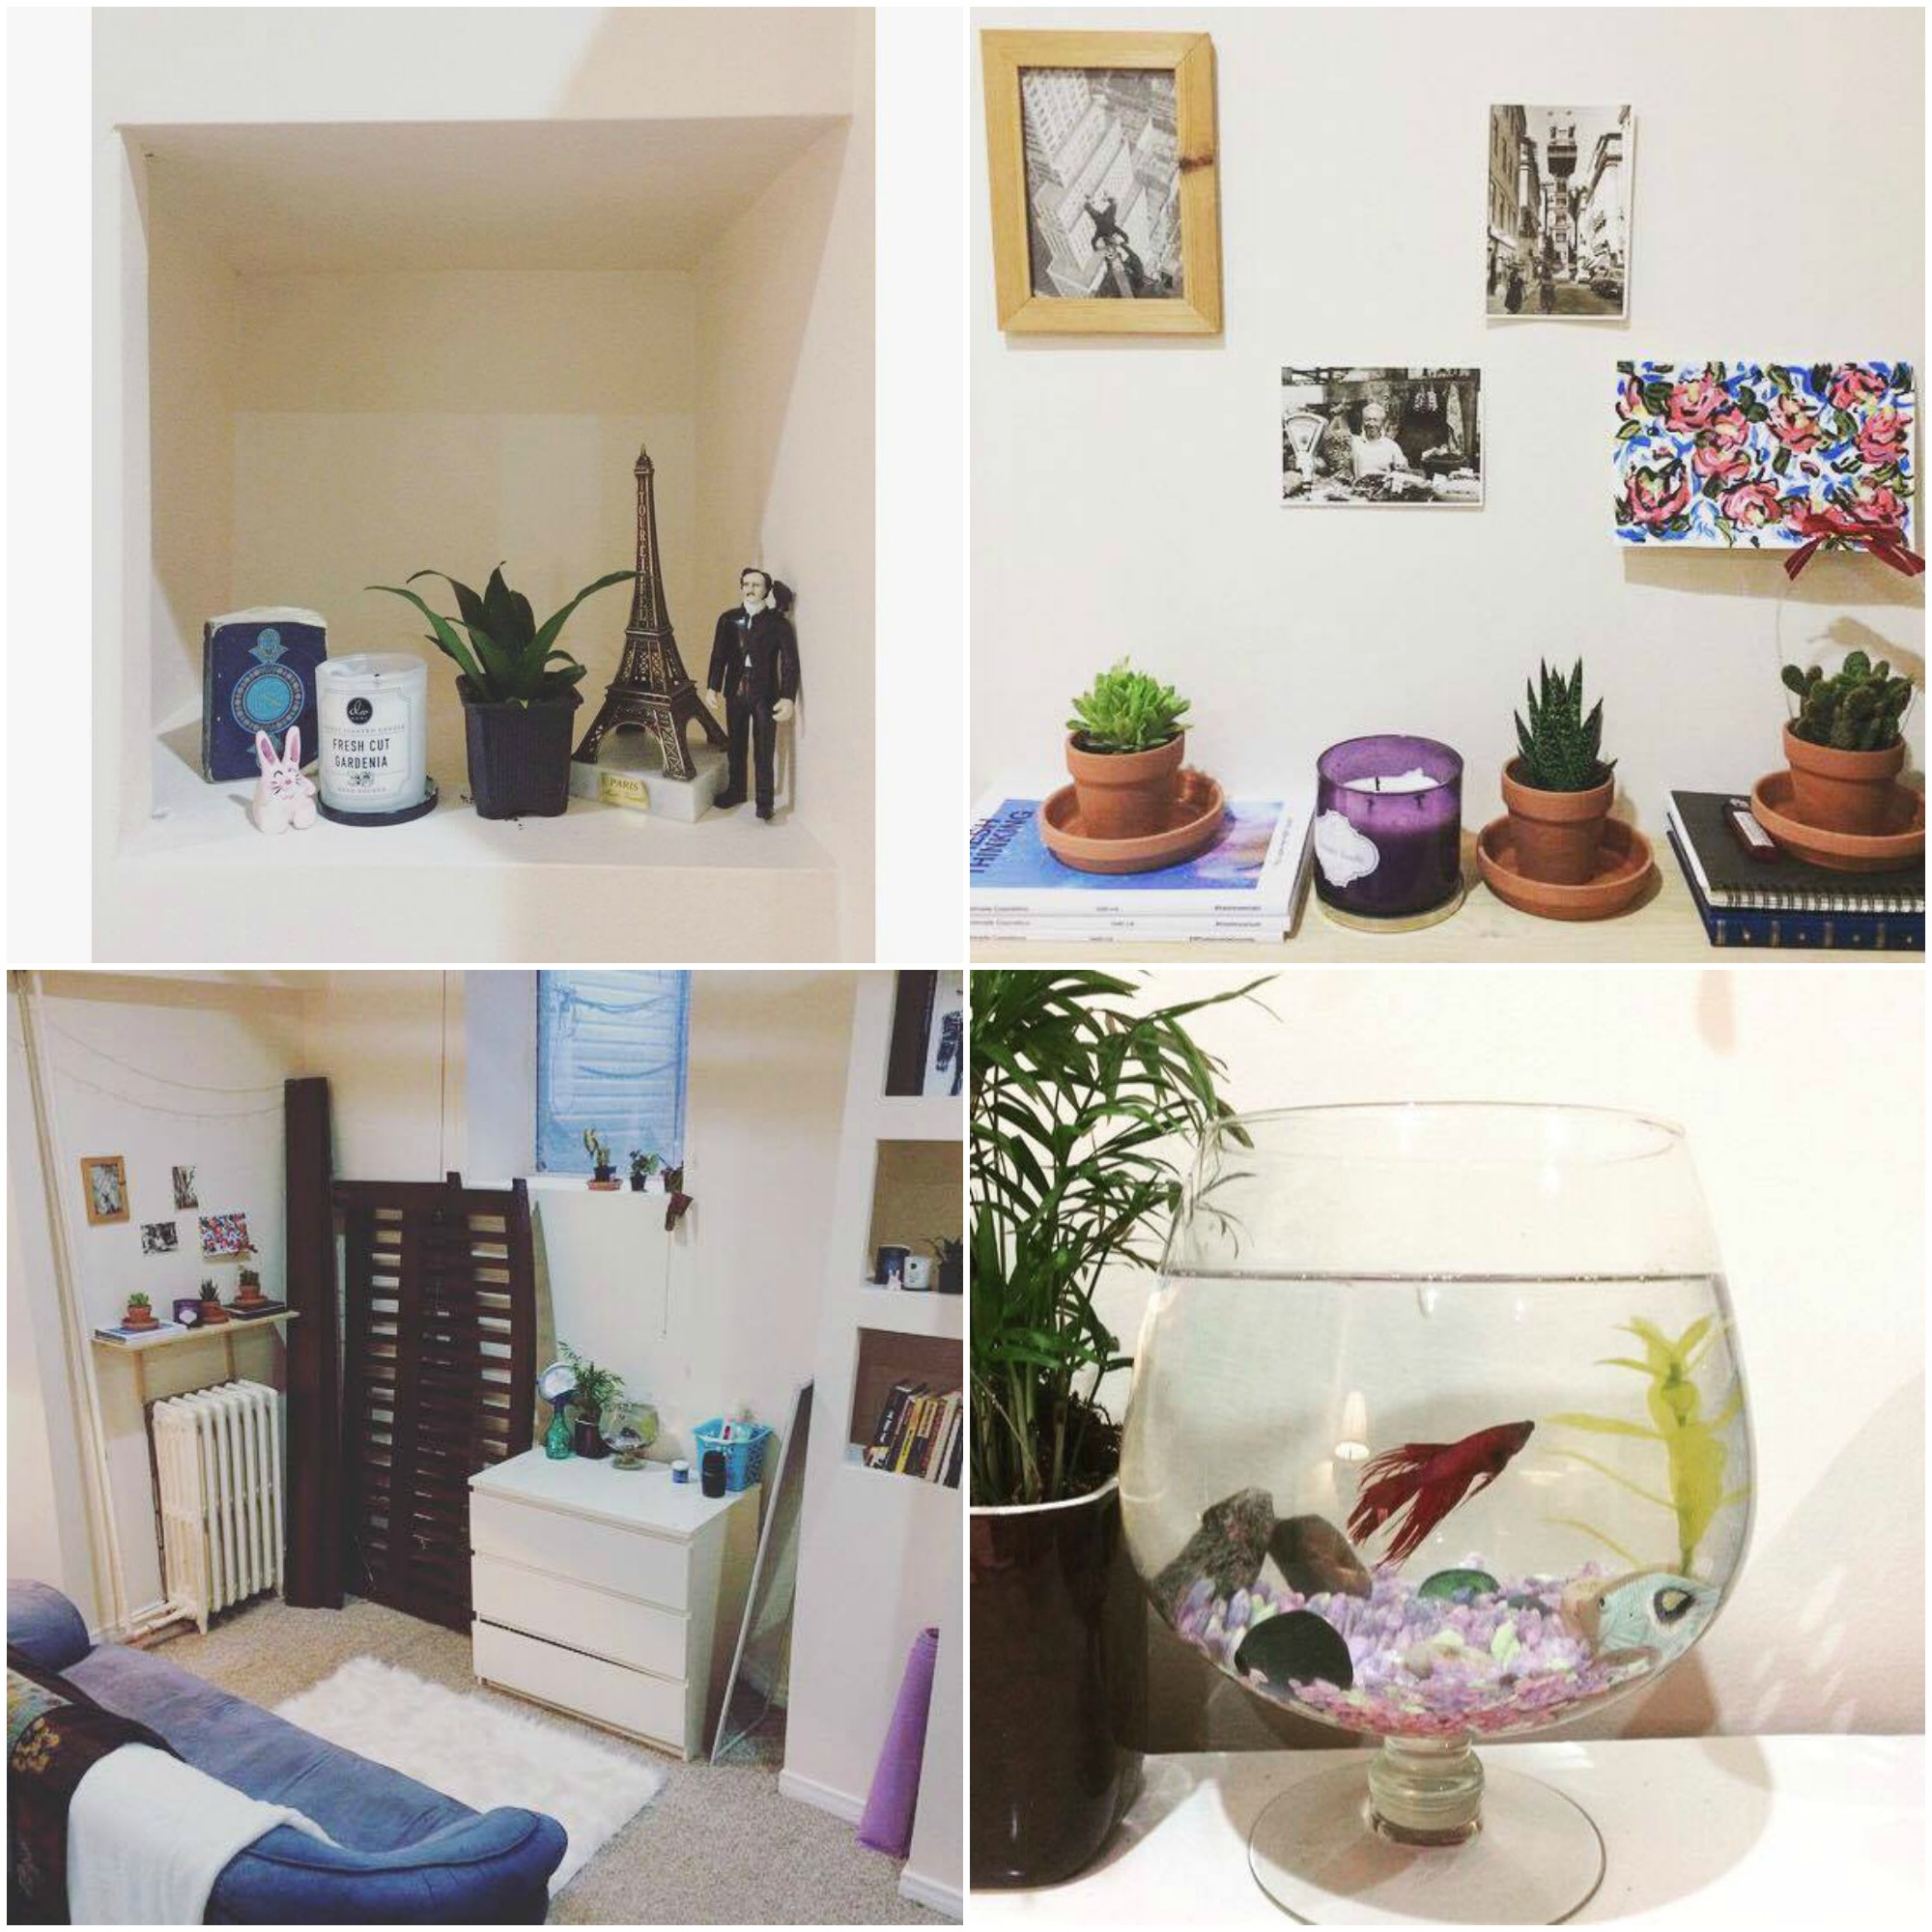 collage of an apartment with framed photos, plants and books